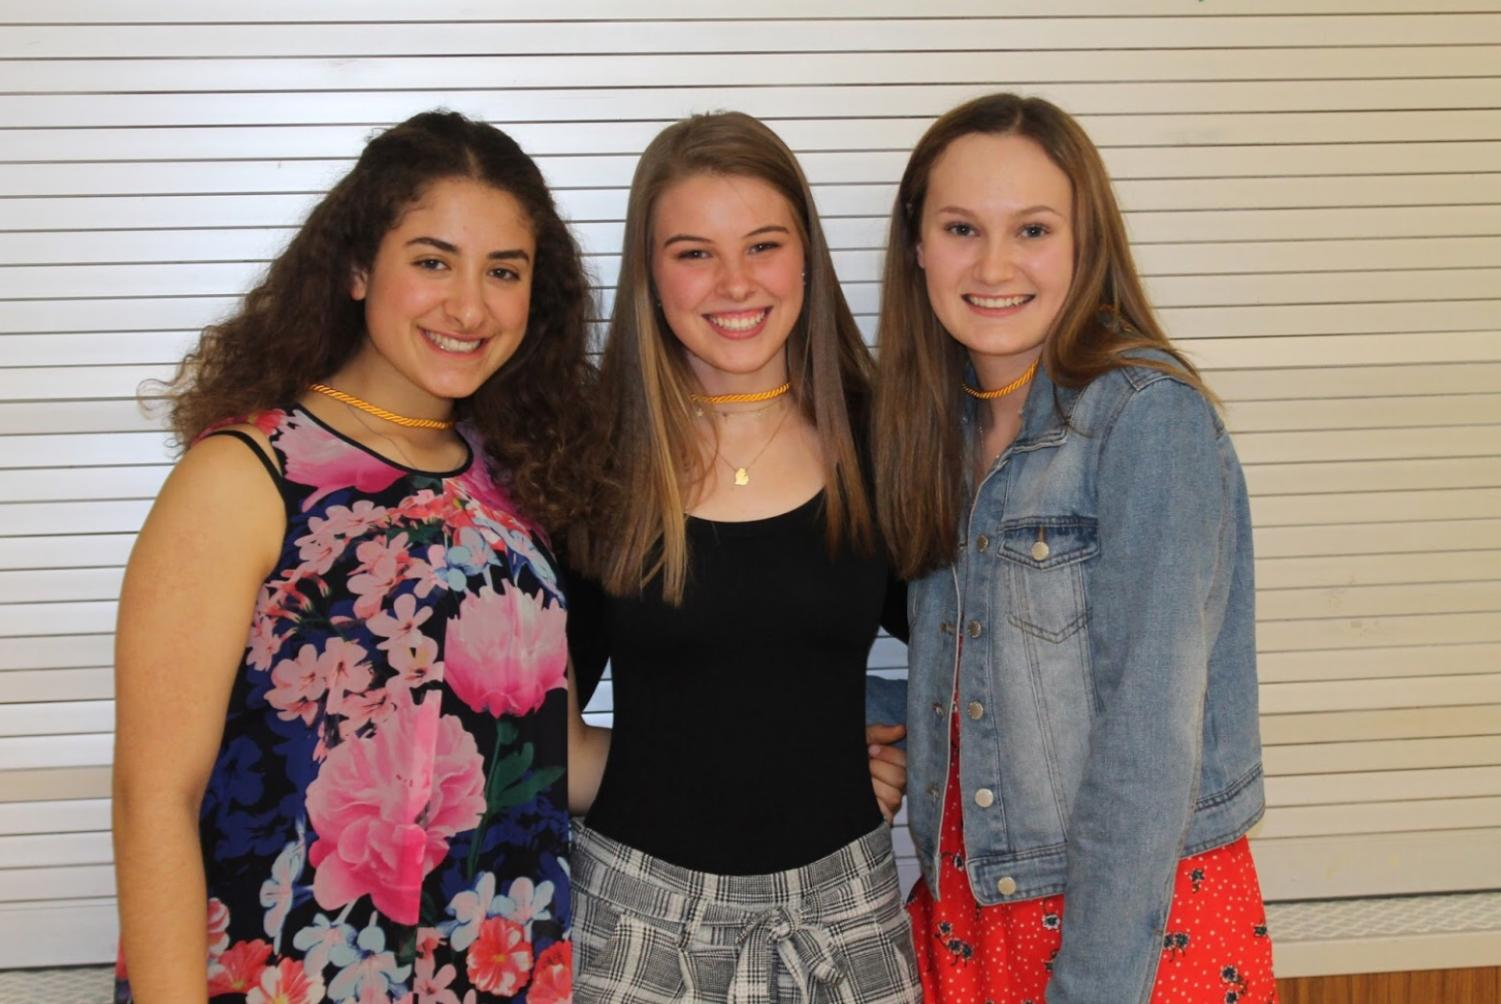 Juniors Suha Qashou (left), Paige Skorupski (middle), and Nicole Yaekle (right) acknowledge their success over their three years at Mercy after being inducted into the National Honor Society.  Photo by Bella Aprilliano